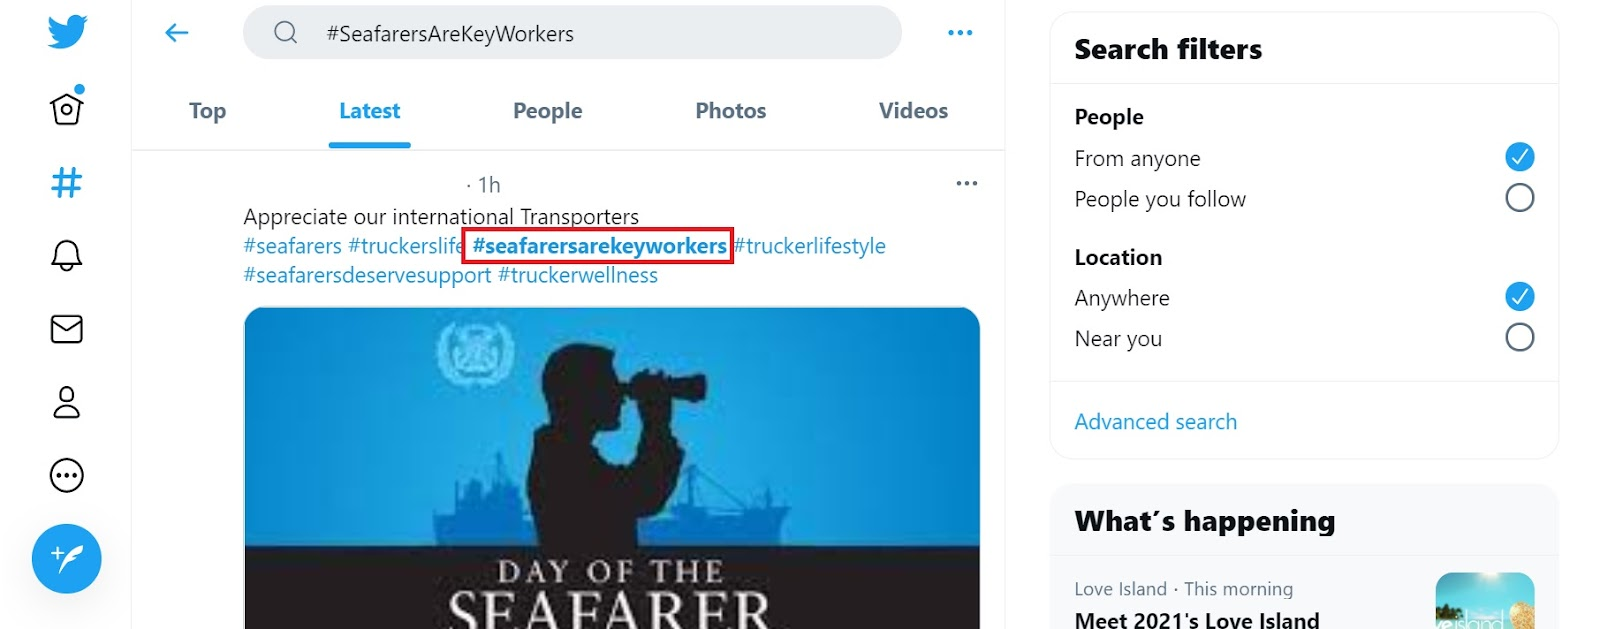 screenshot of the hashtag Seafarers Are Key Workers on Twitter.